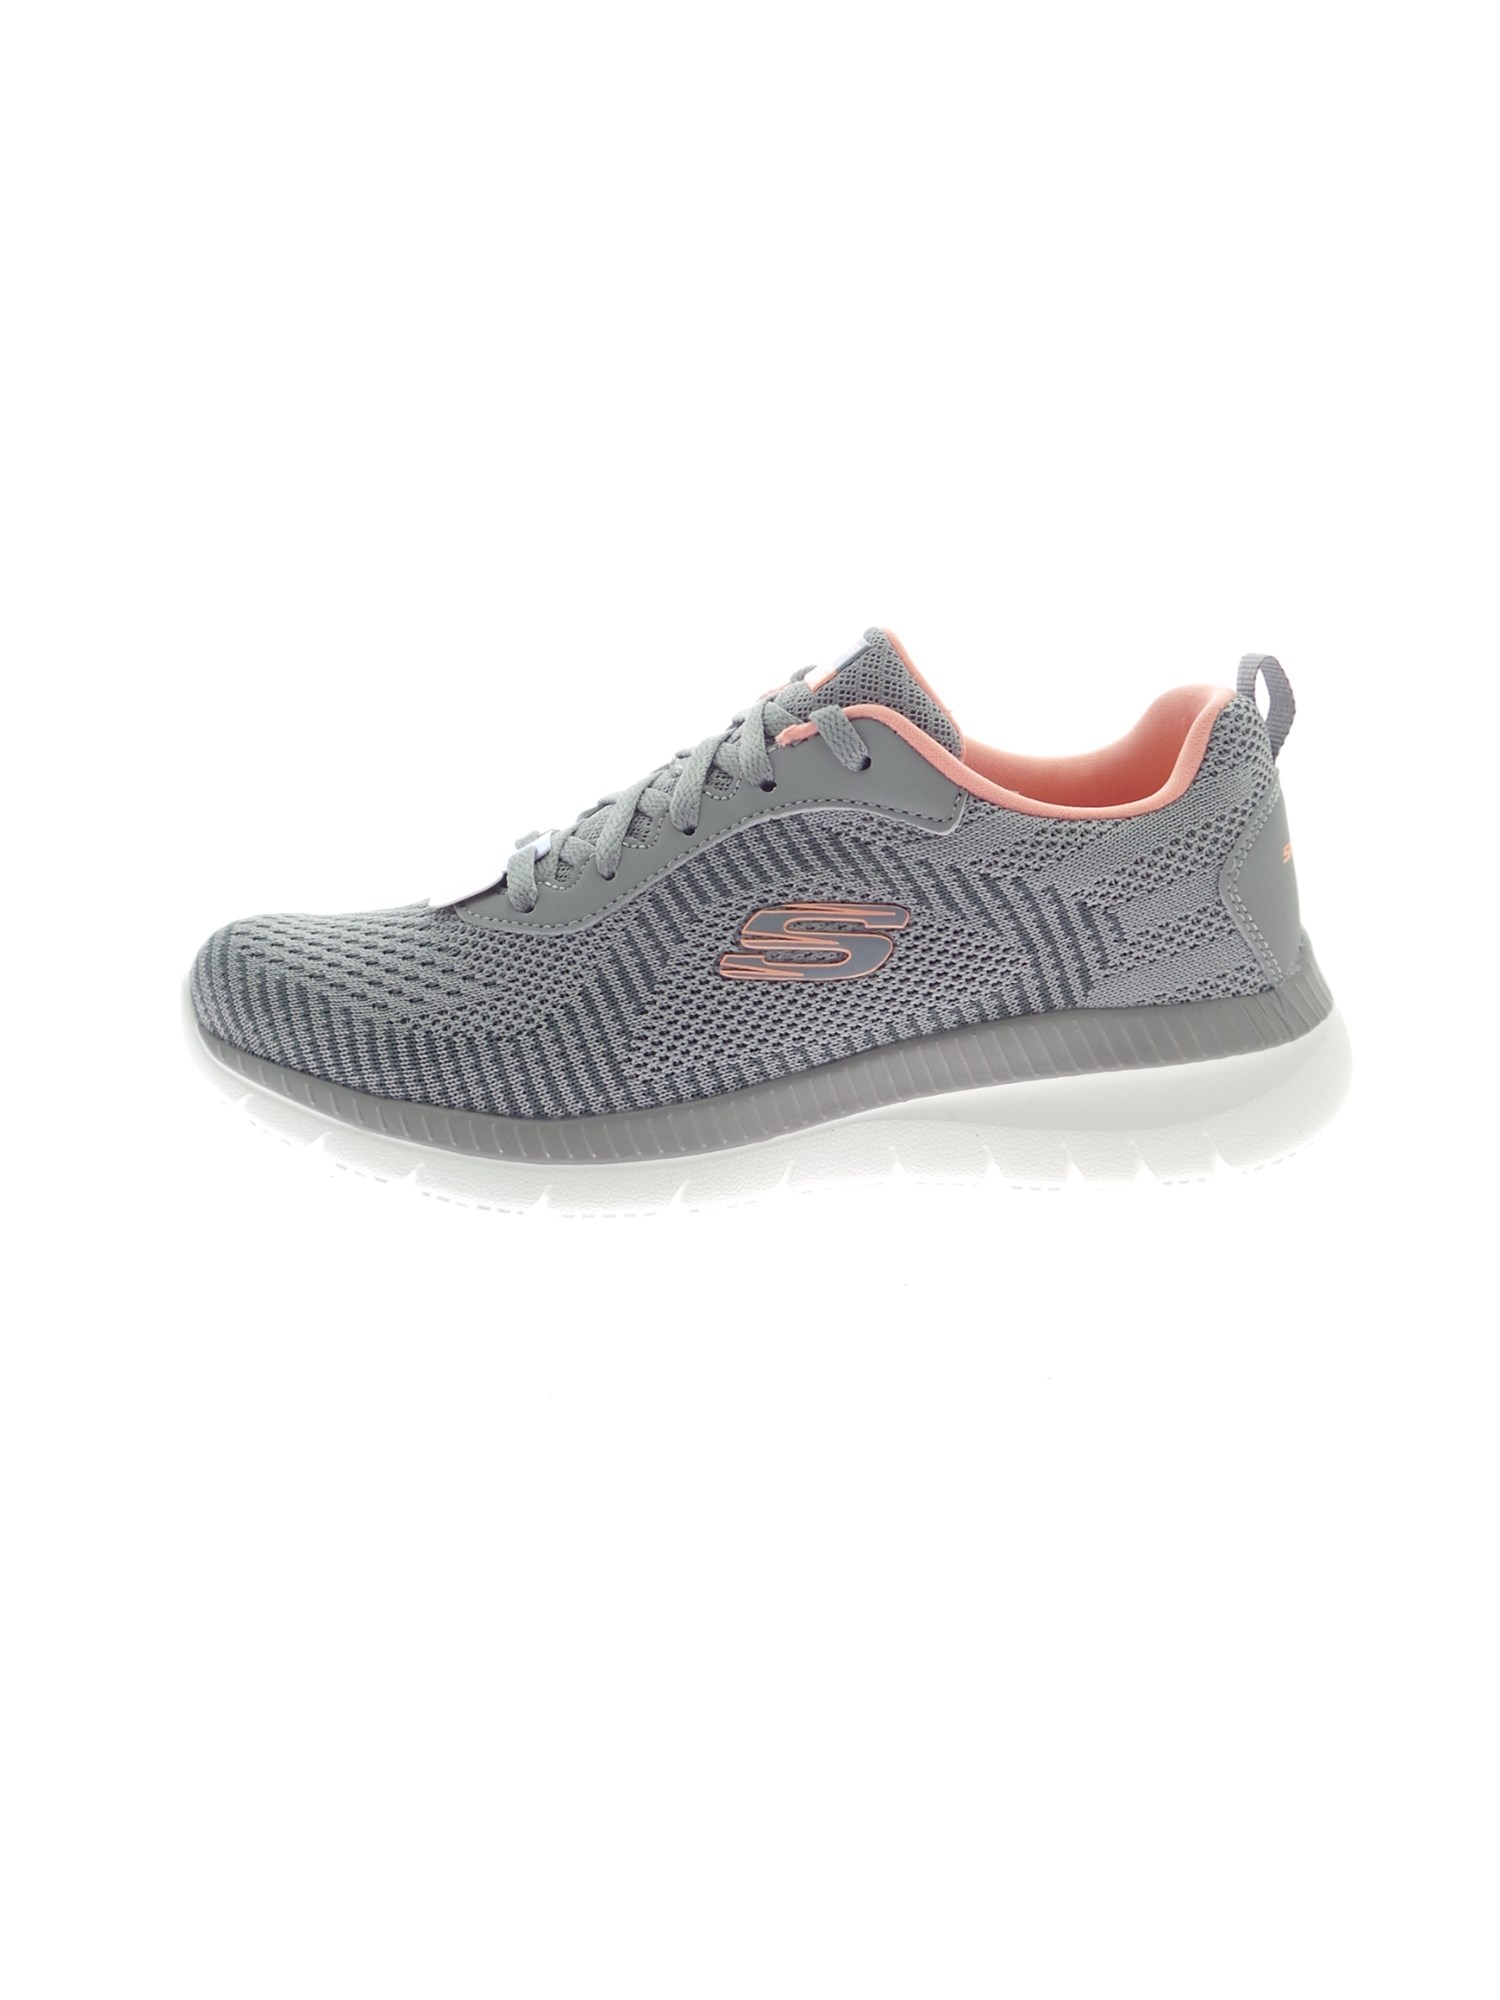 Skechers 149220 Grey Shoes Woman